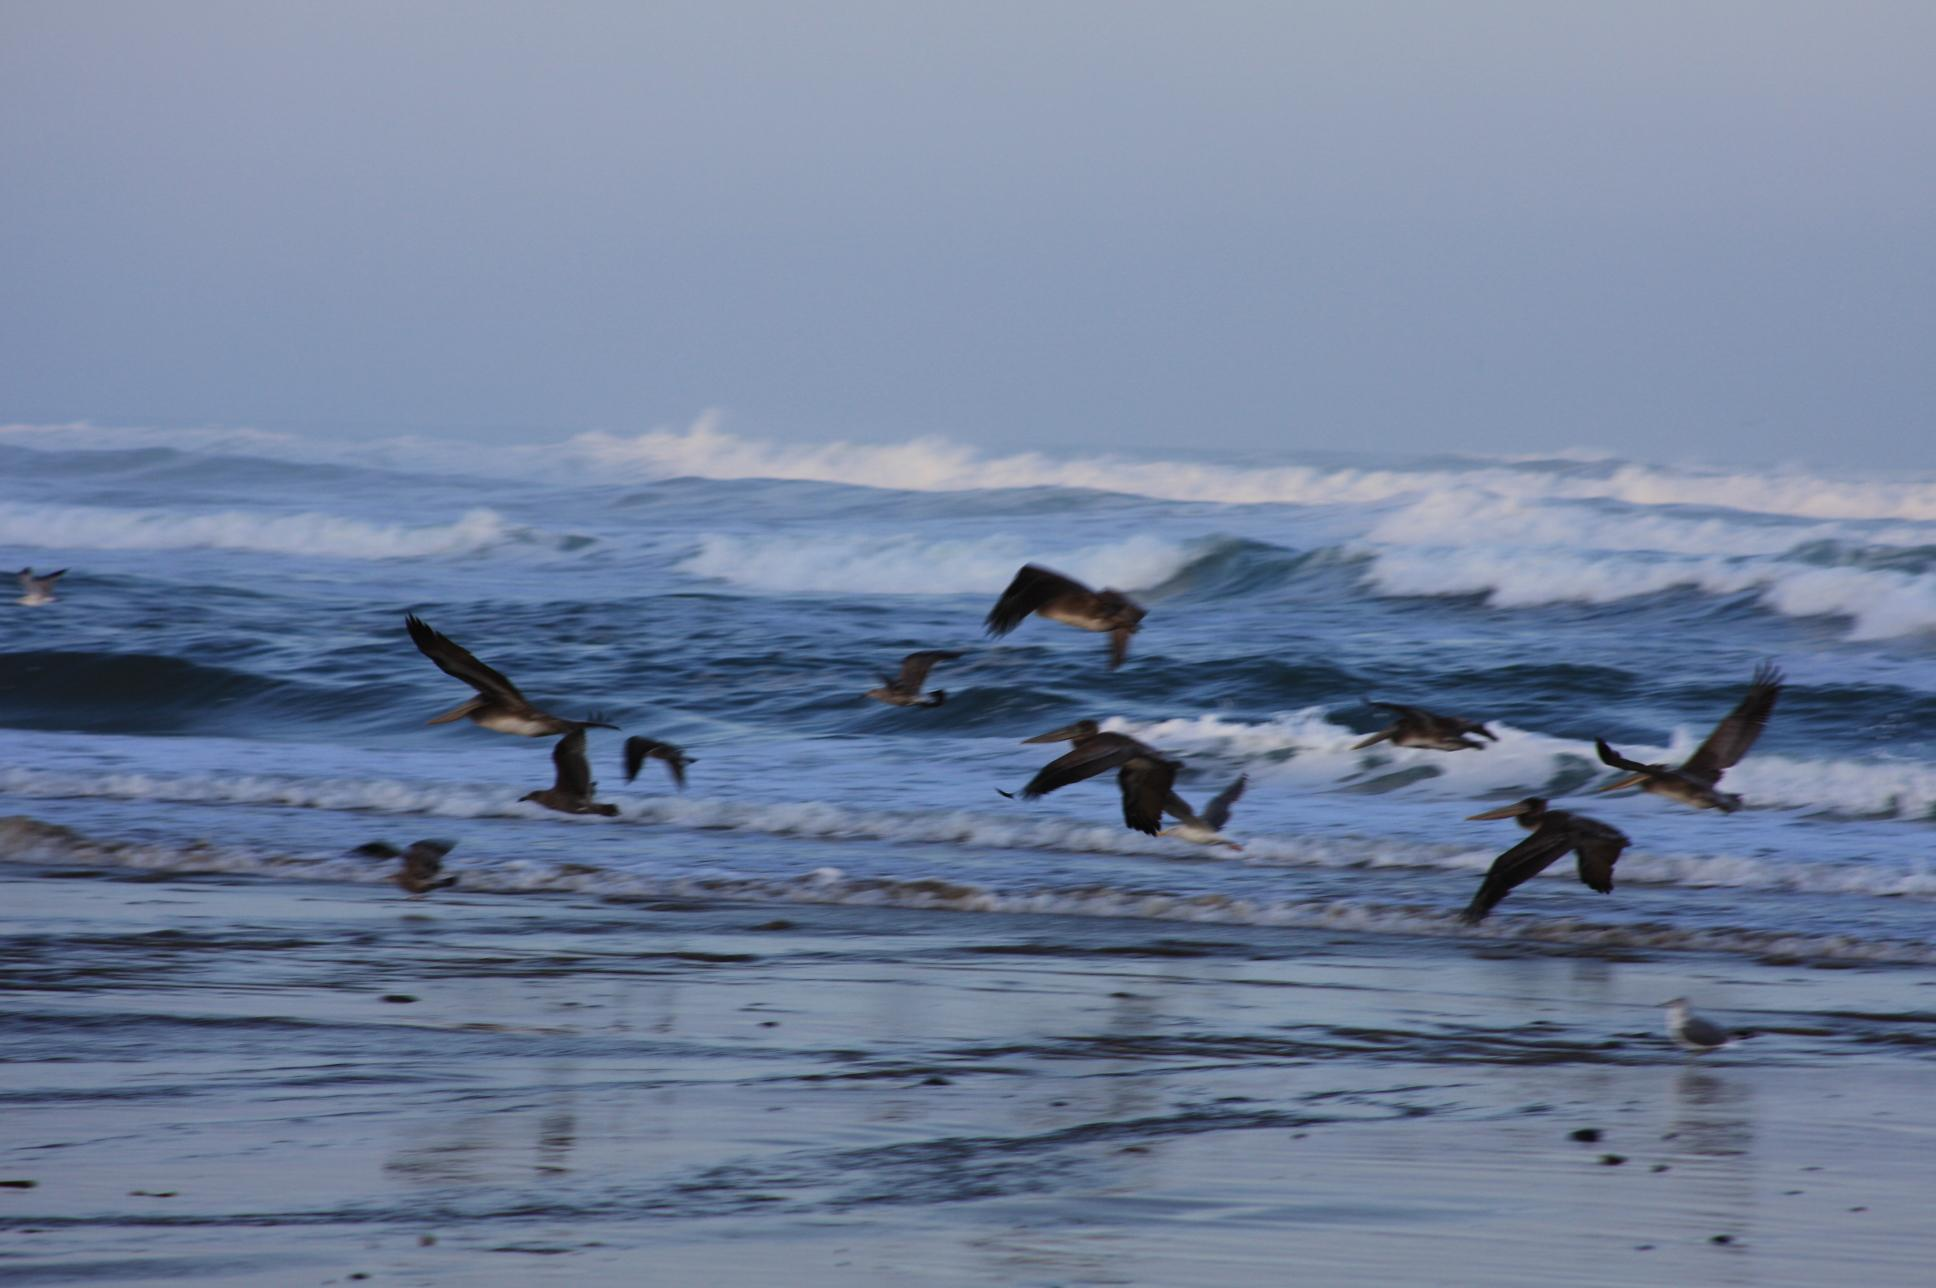 Pelicans on the prowl